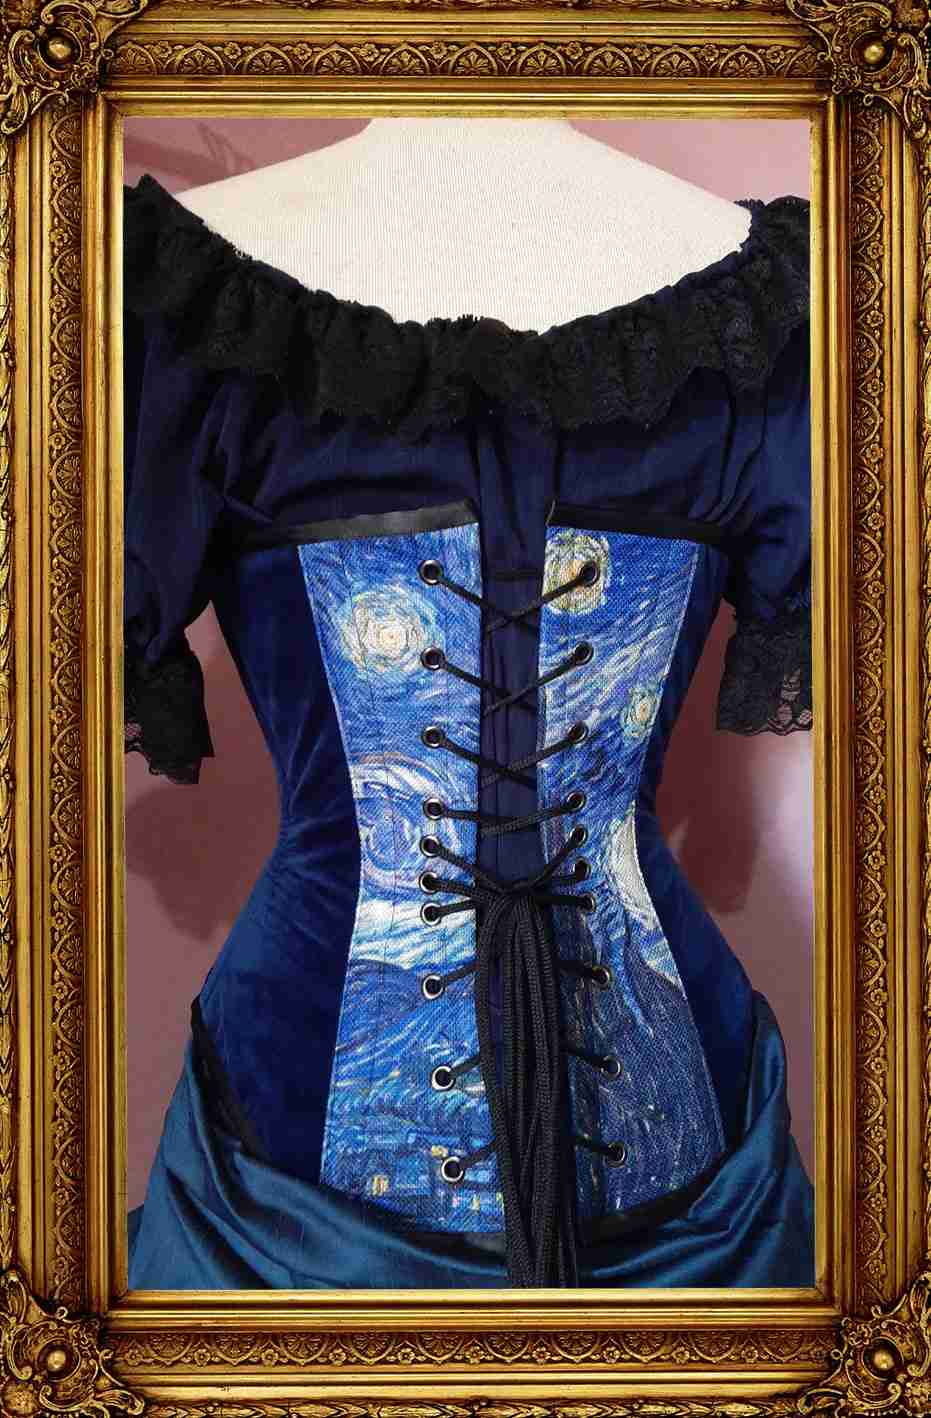 back view of the new van gogh Starry Night print corset showing back corset lacing and dark blue velvet side panels on a mannequin